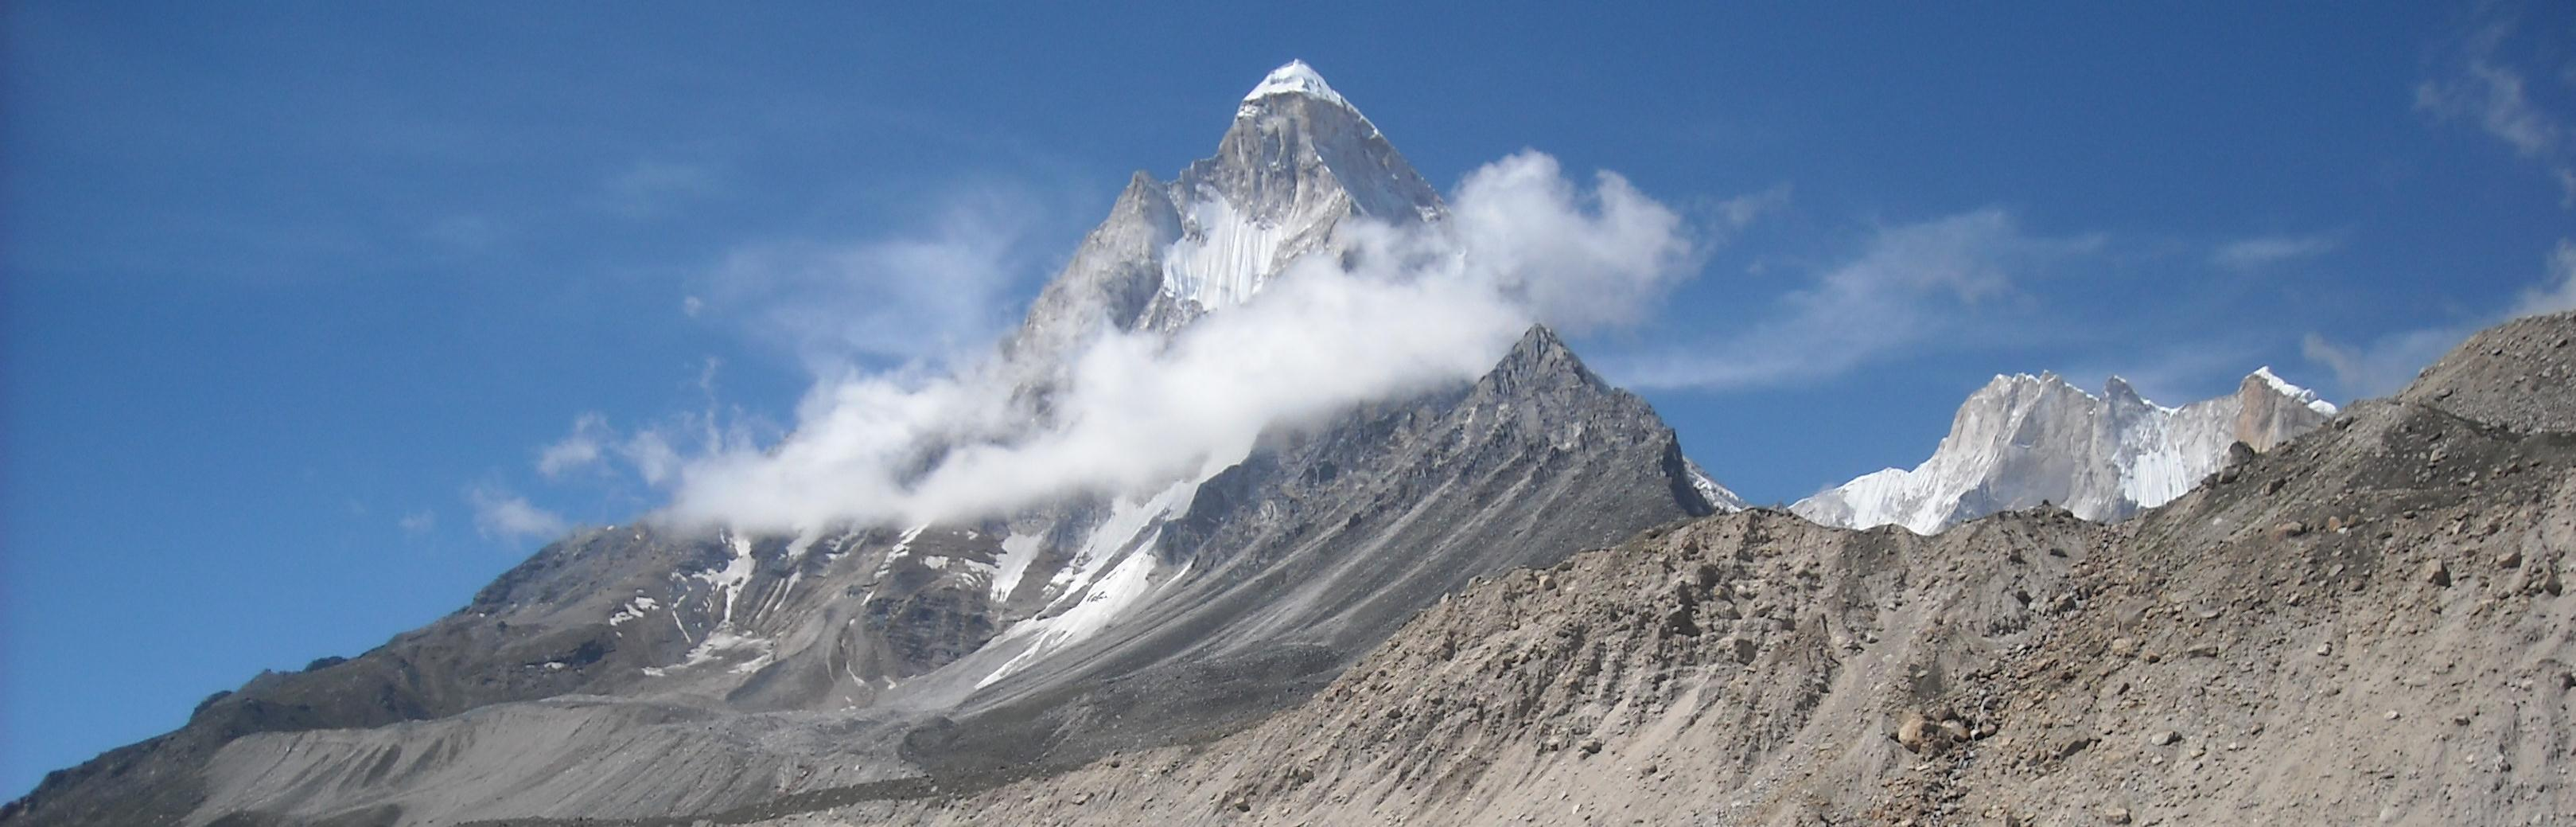 Mt Shivling Peak Climbing Expedition